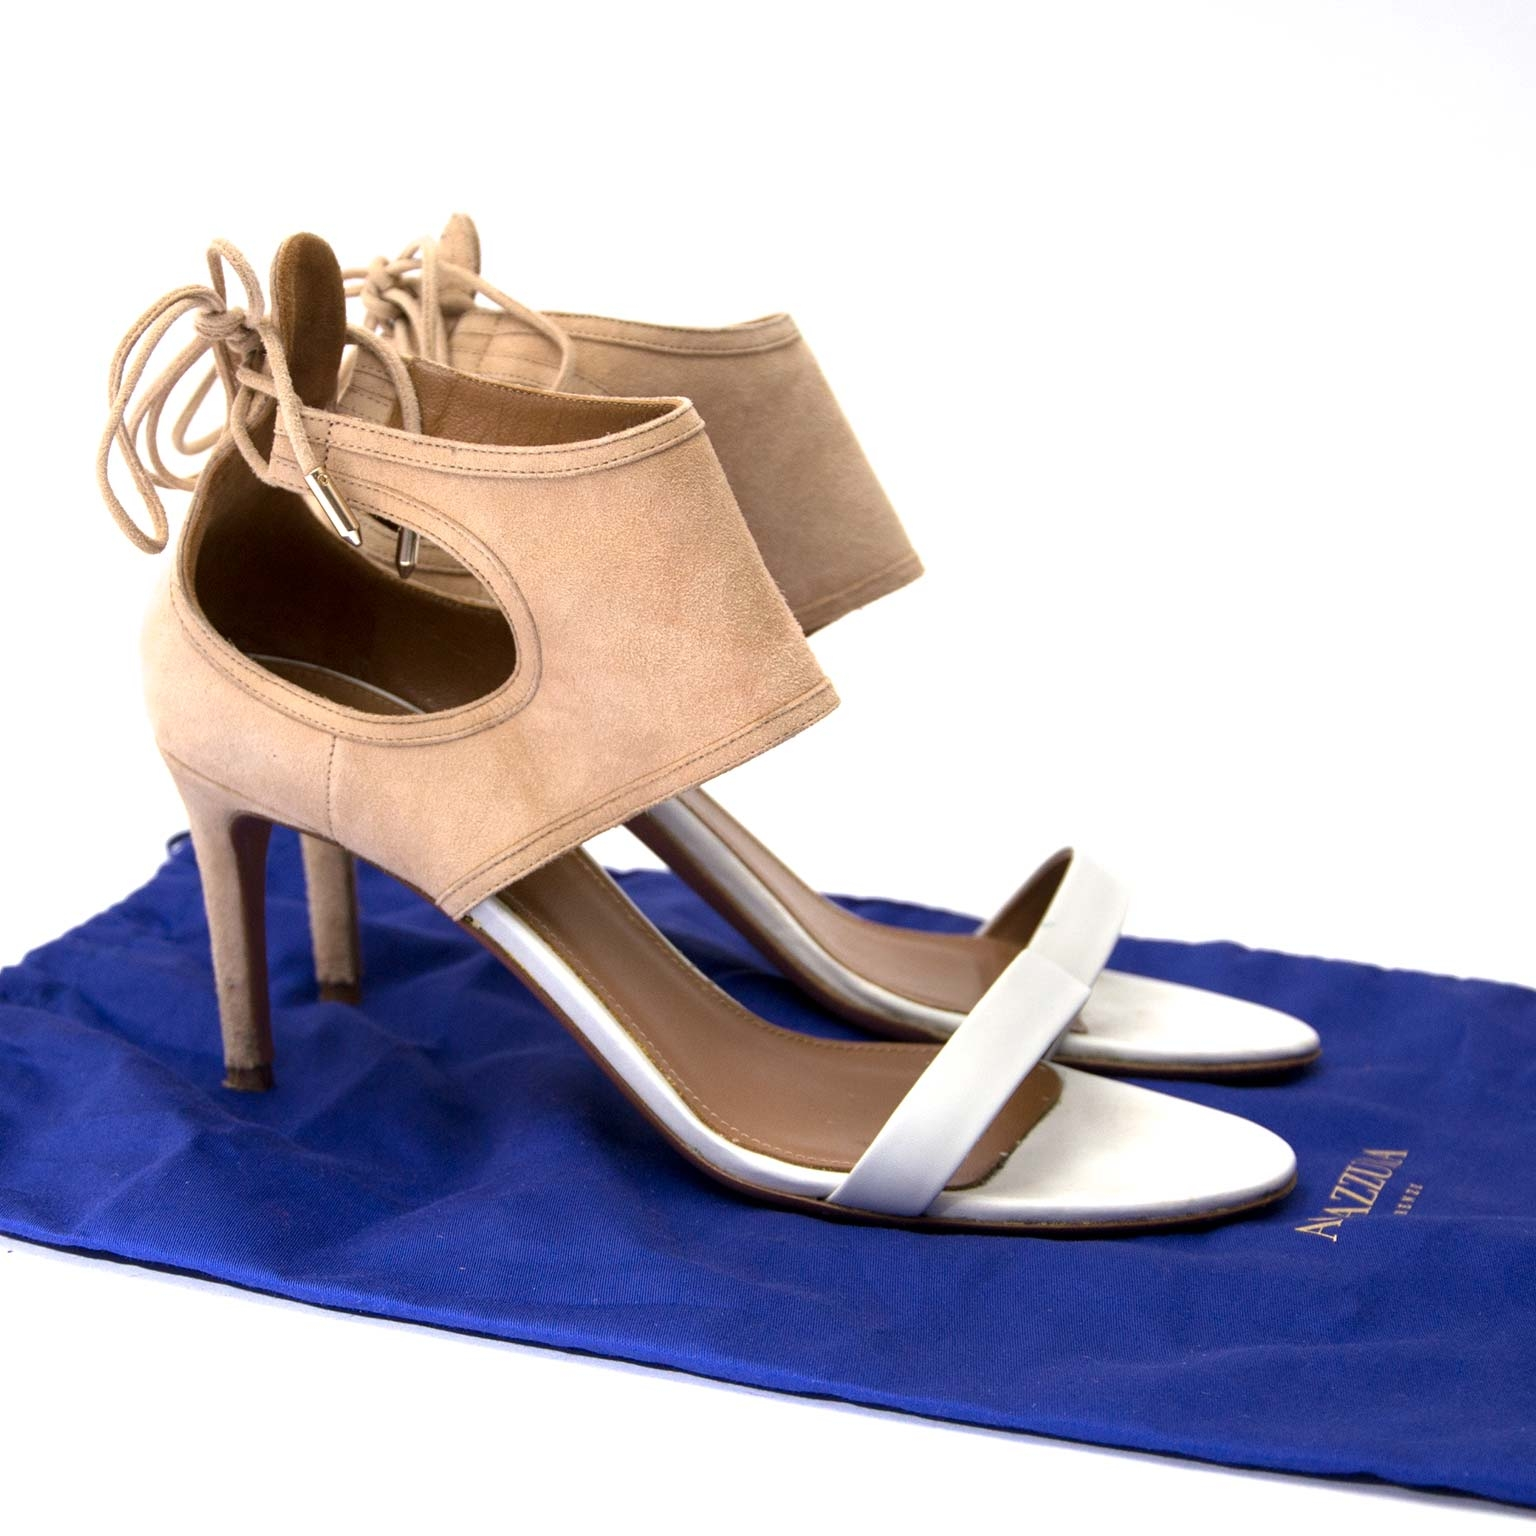 26d84324ae96 ... Aquazzura White   Beige Suede Heel Sandals - Size 39 Buy authentic  designer Aquazzura secondhand shoes